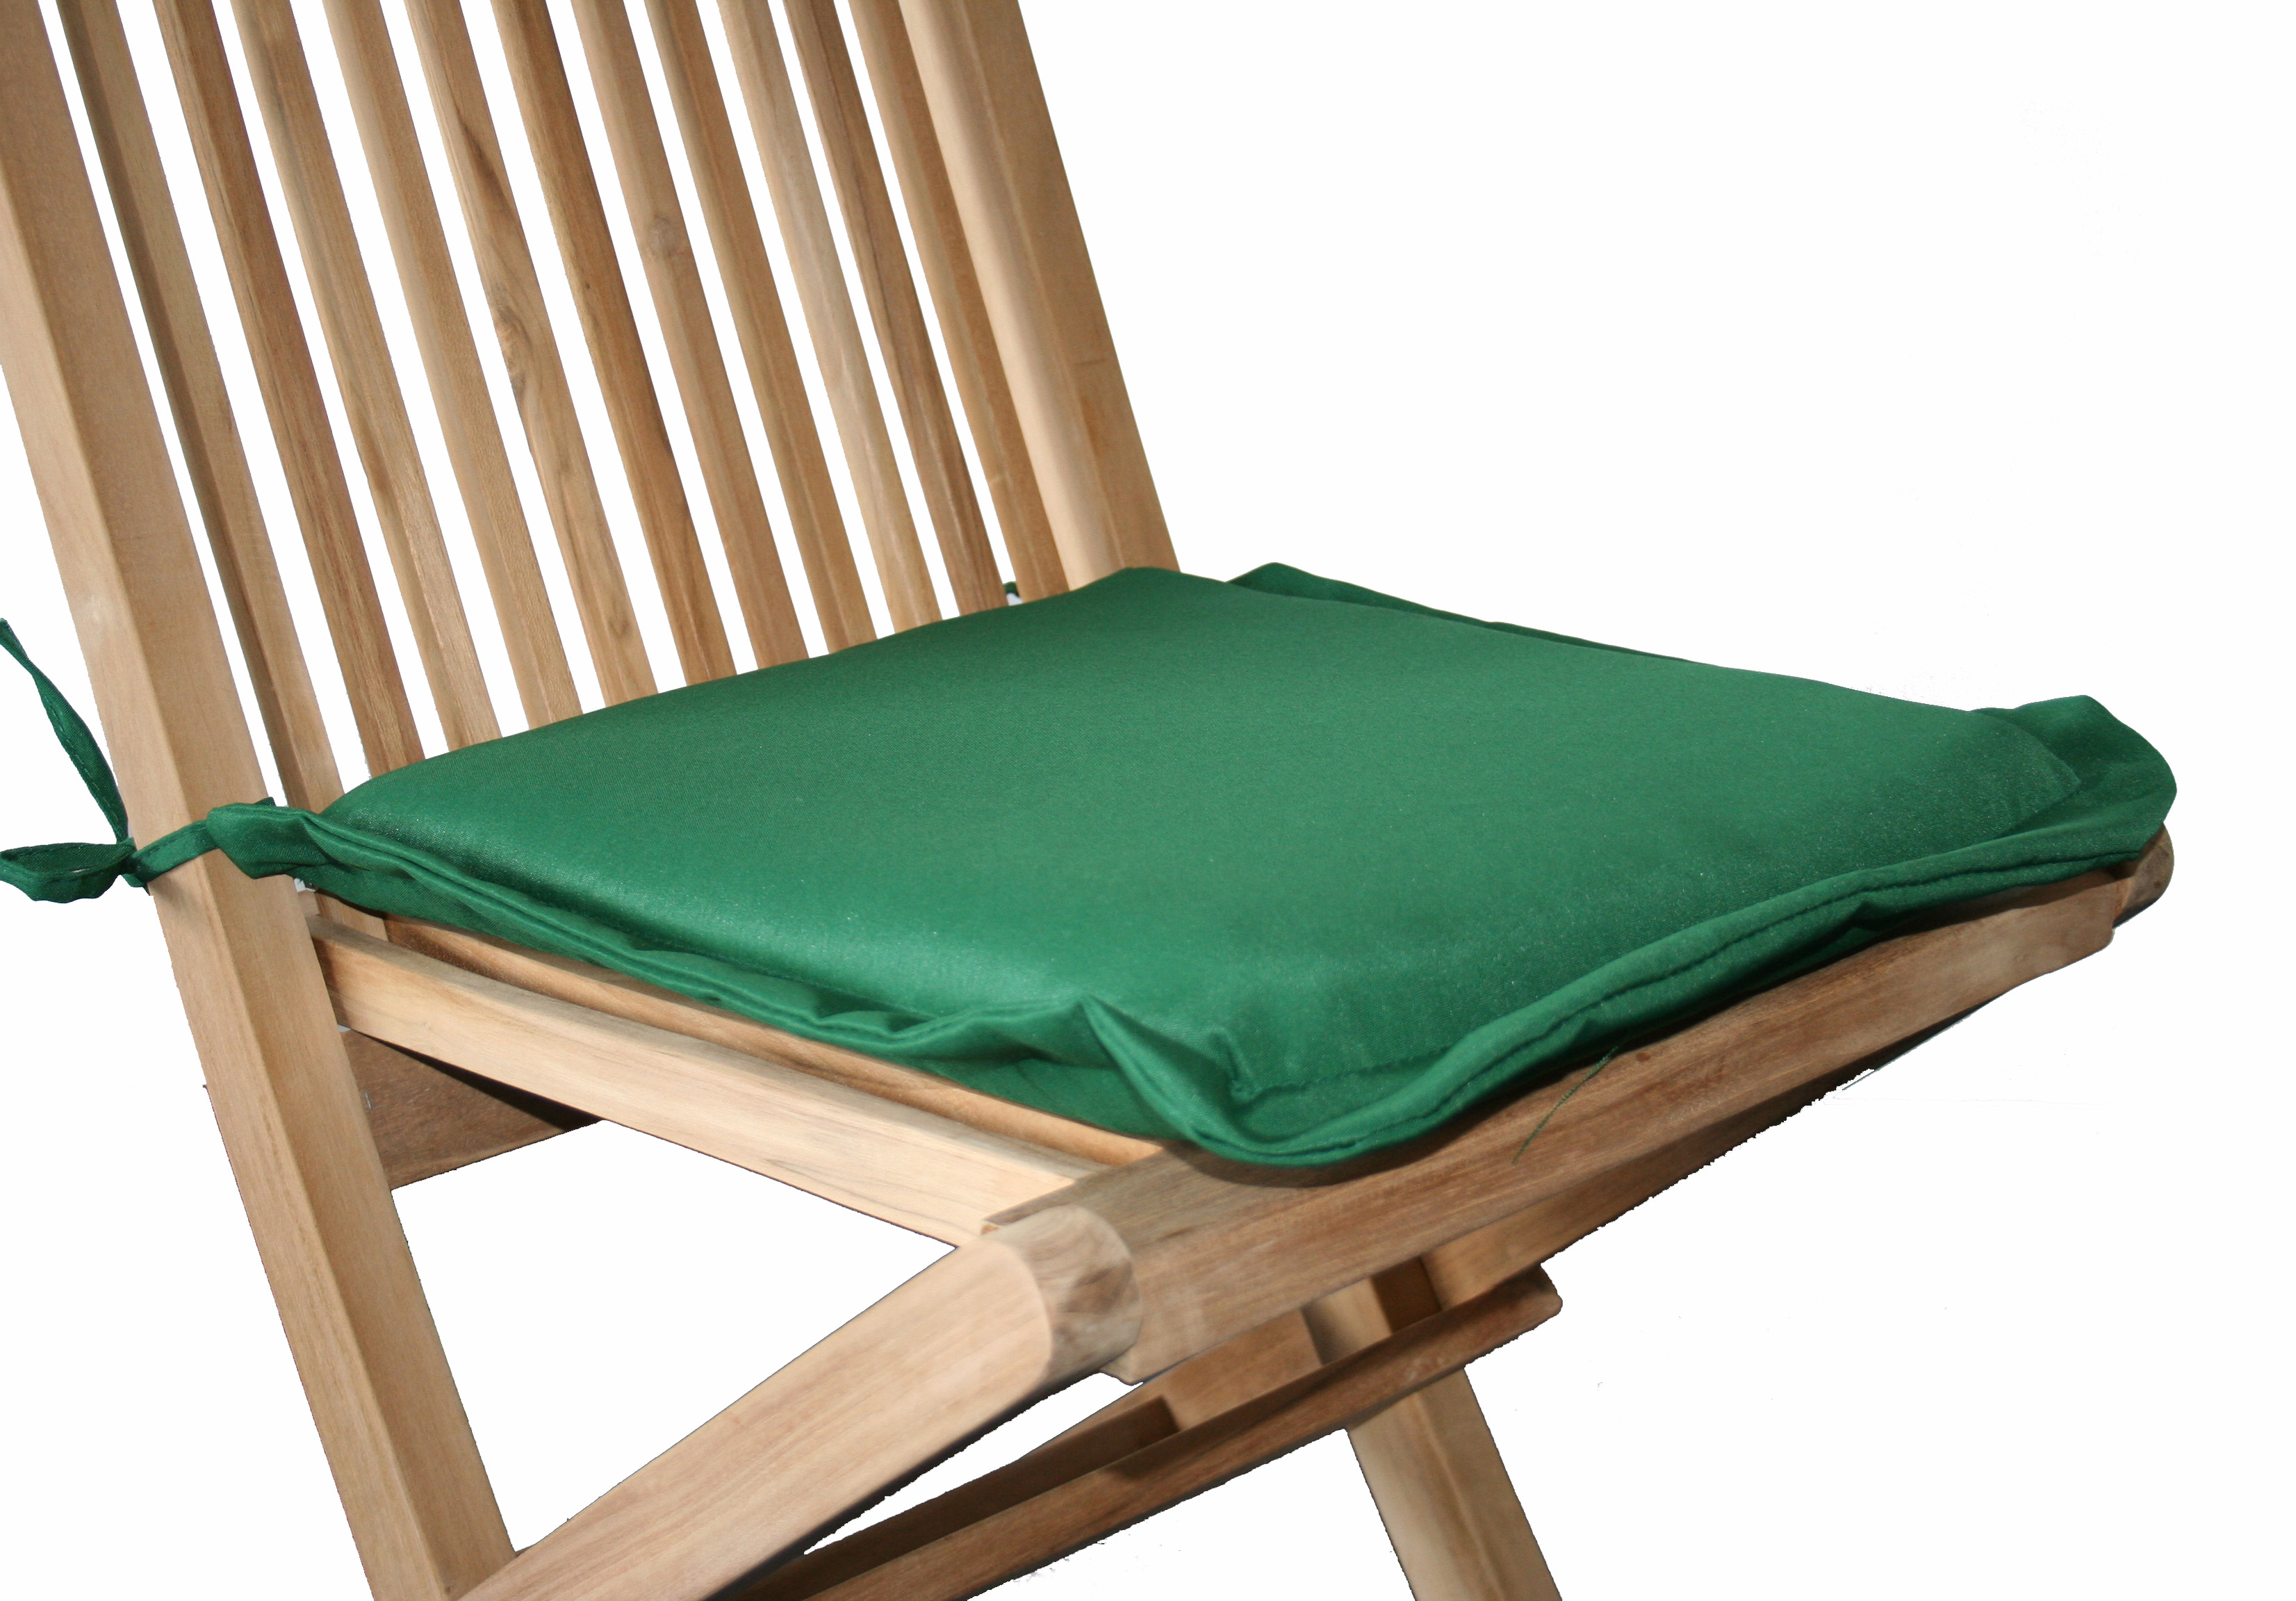 1 X Pair Of Garden Chair Seat Pad Cushions-Available In